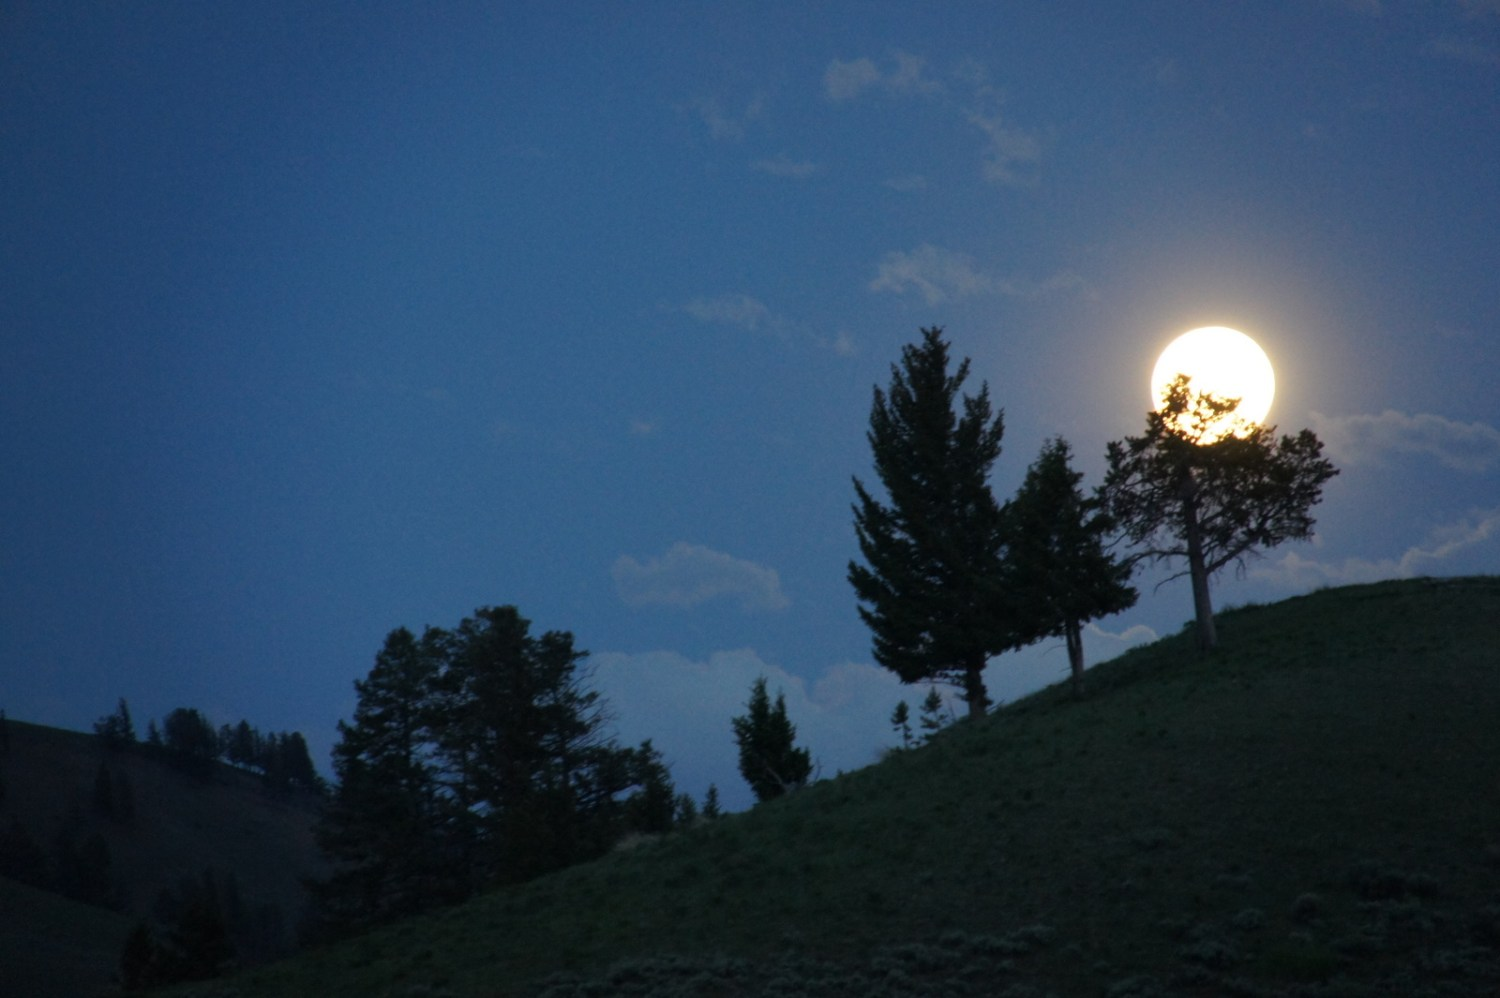 A full moon rises over Yellowstone.